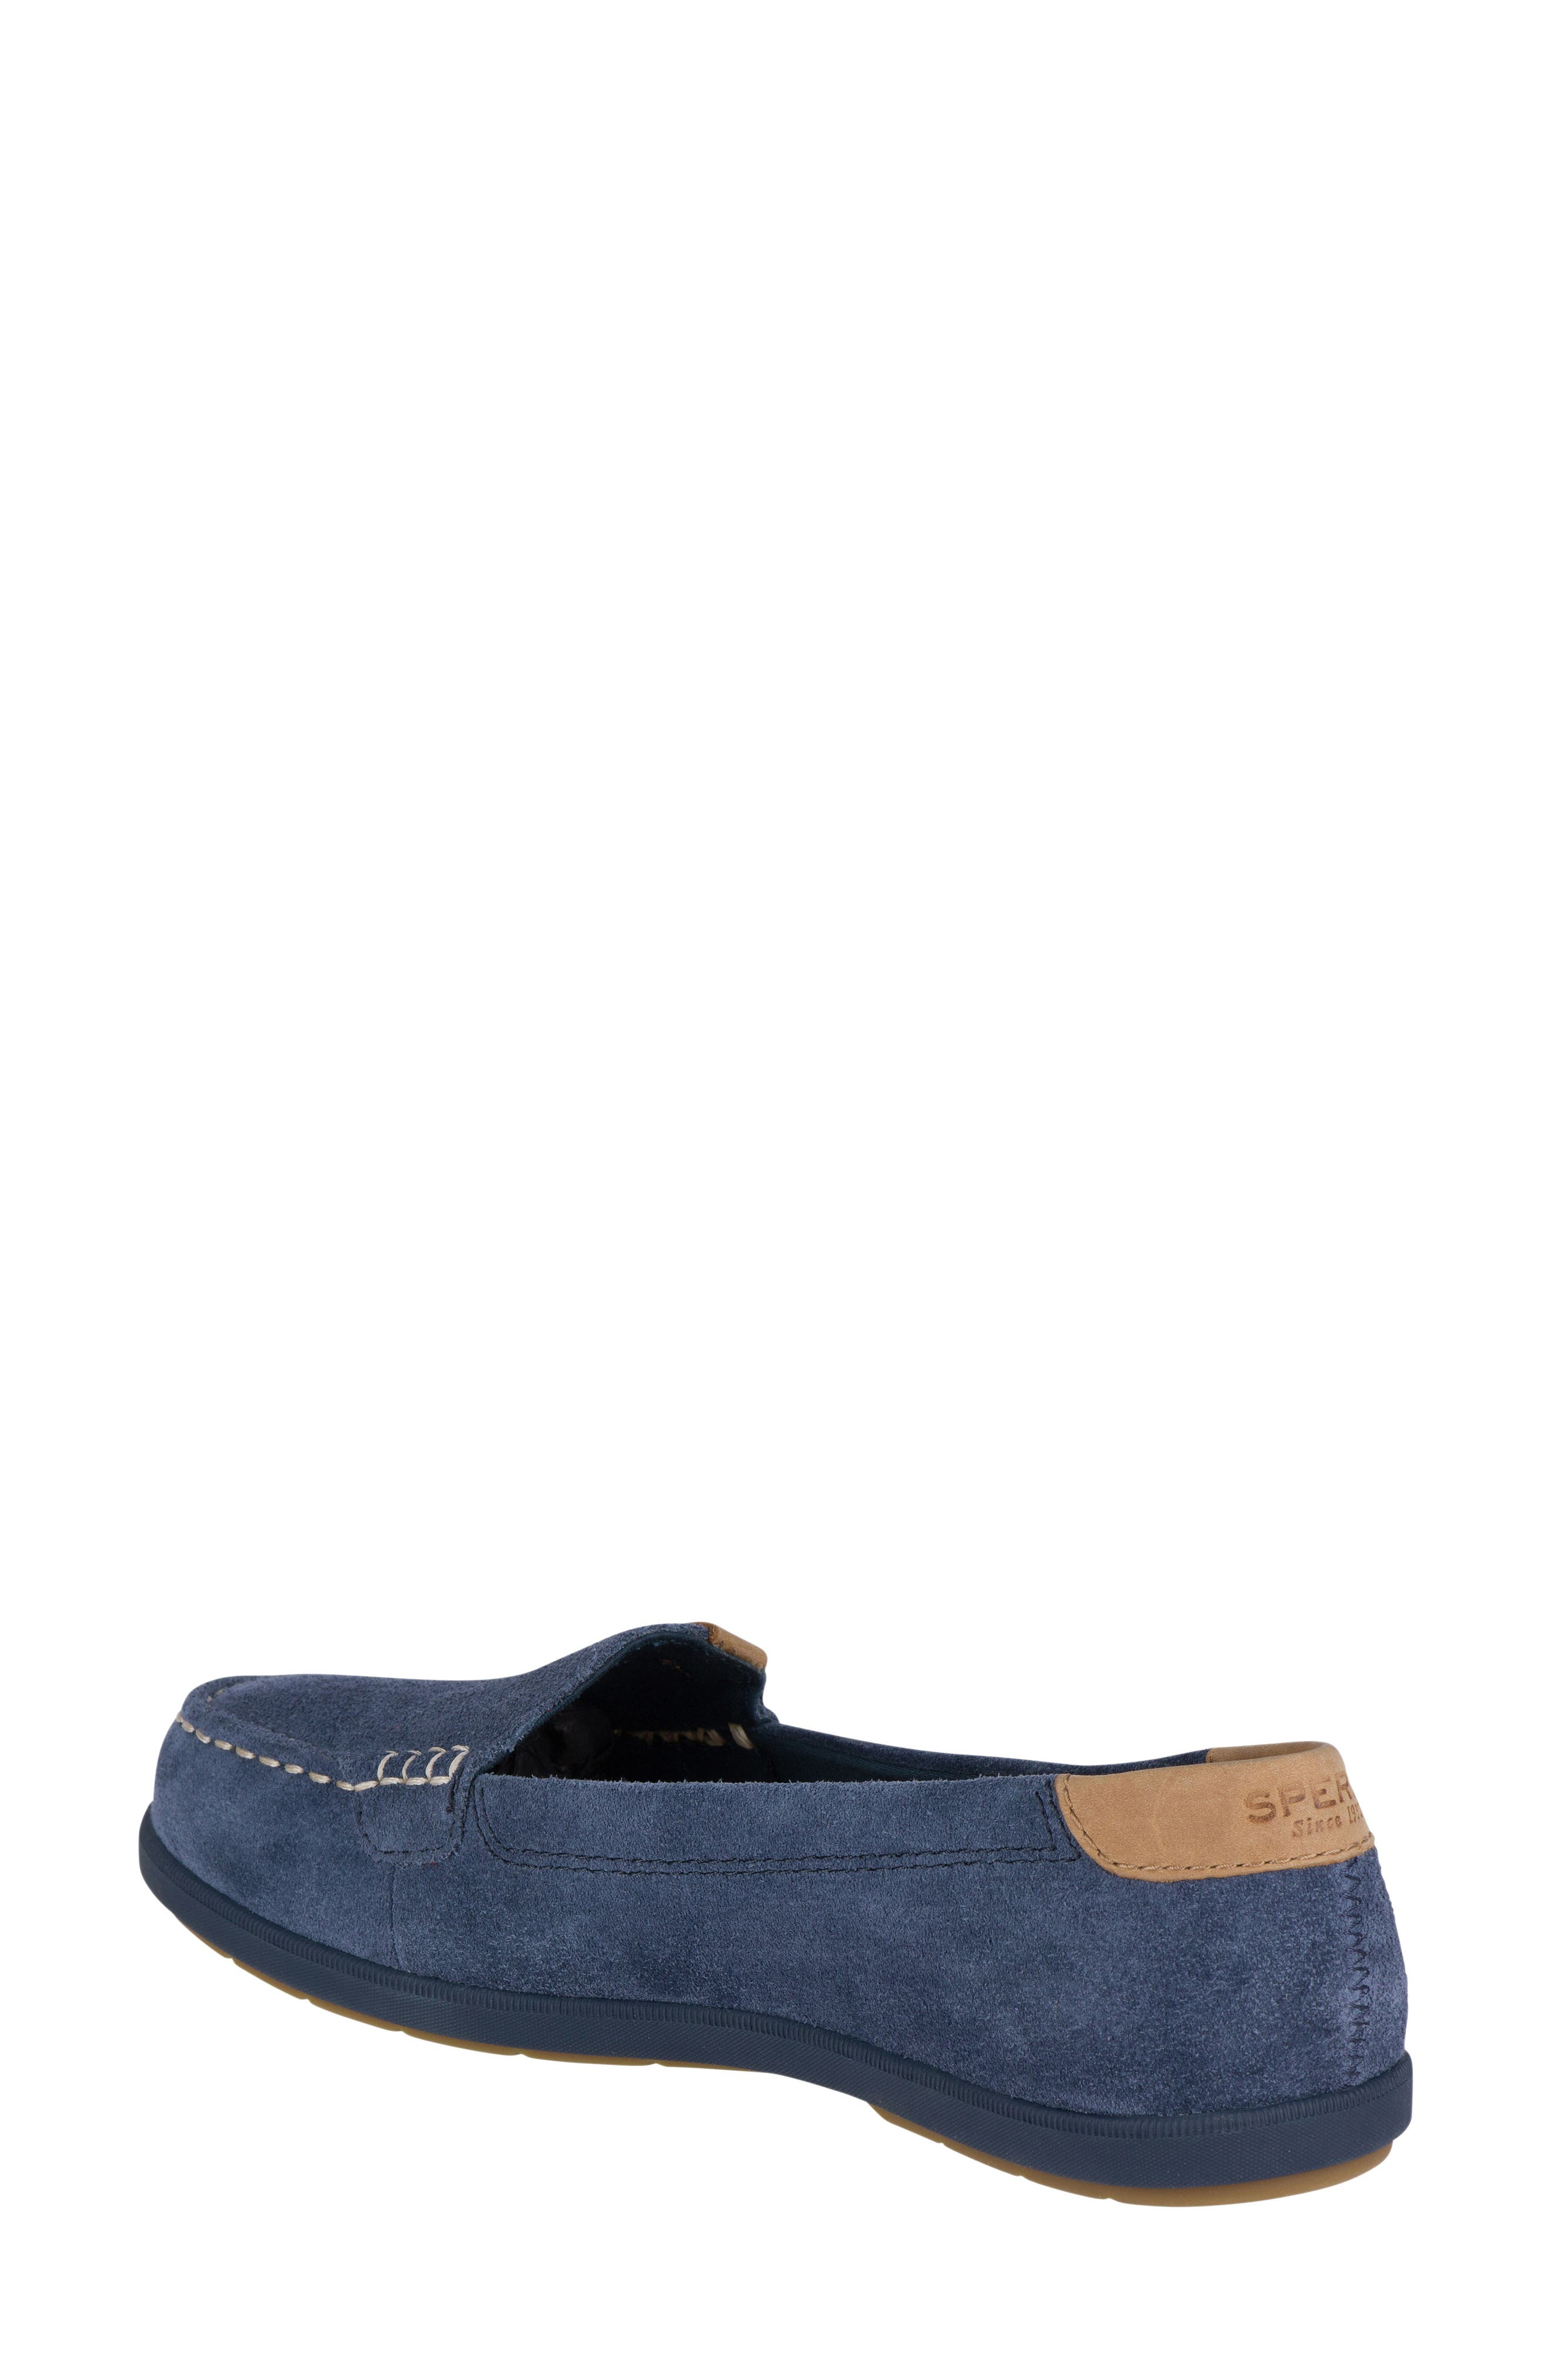 Coil Mia Loafer,                             Alternate thumbnail 5, color,